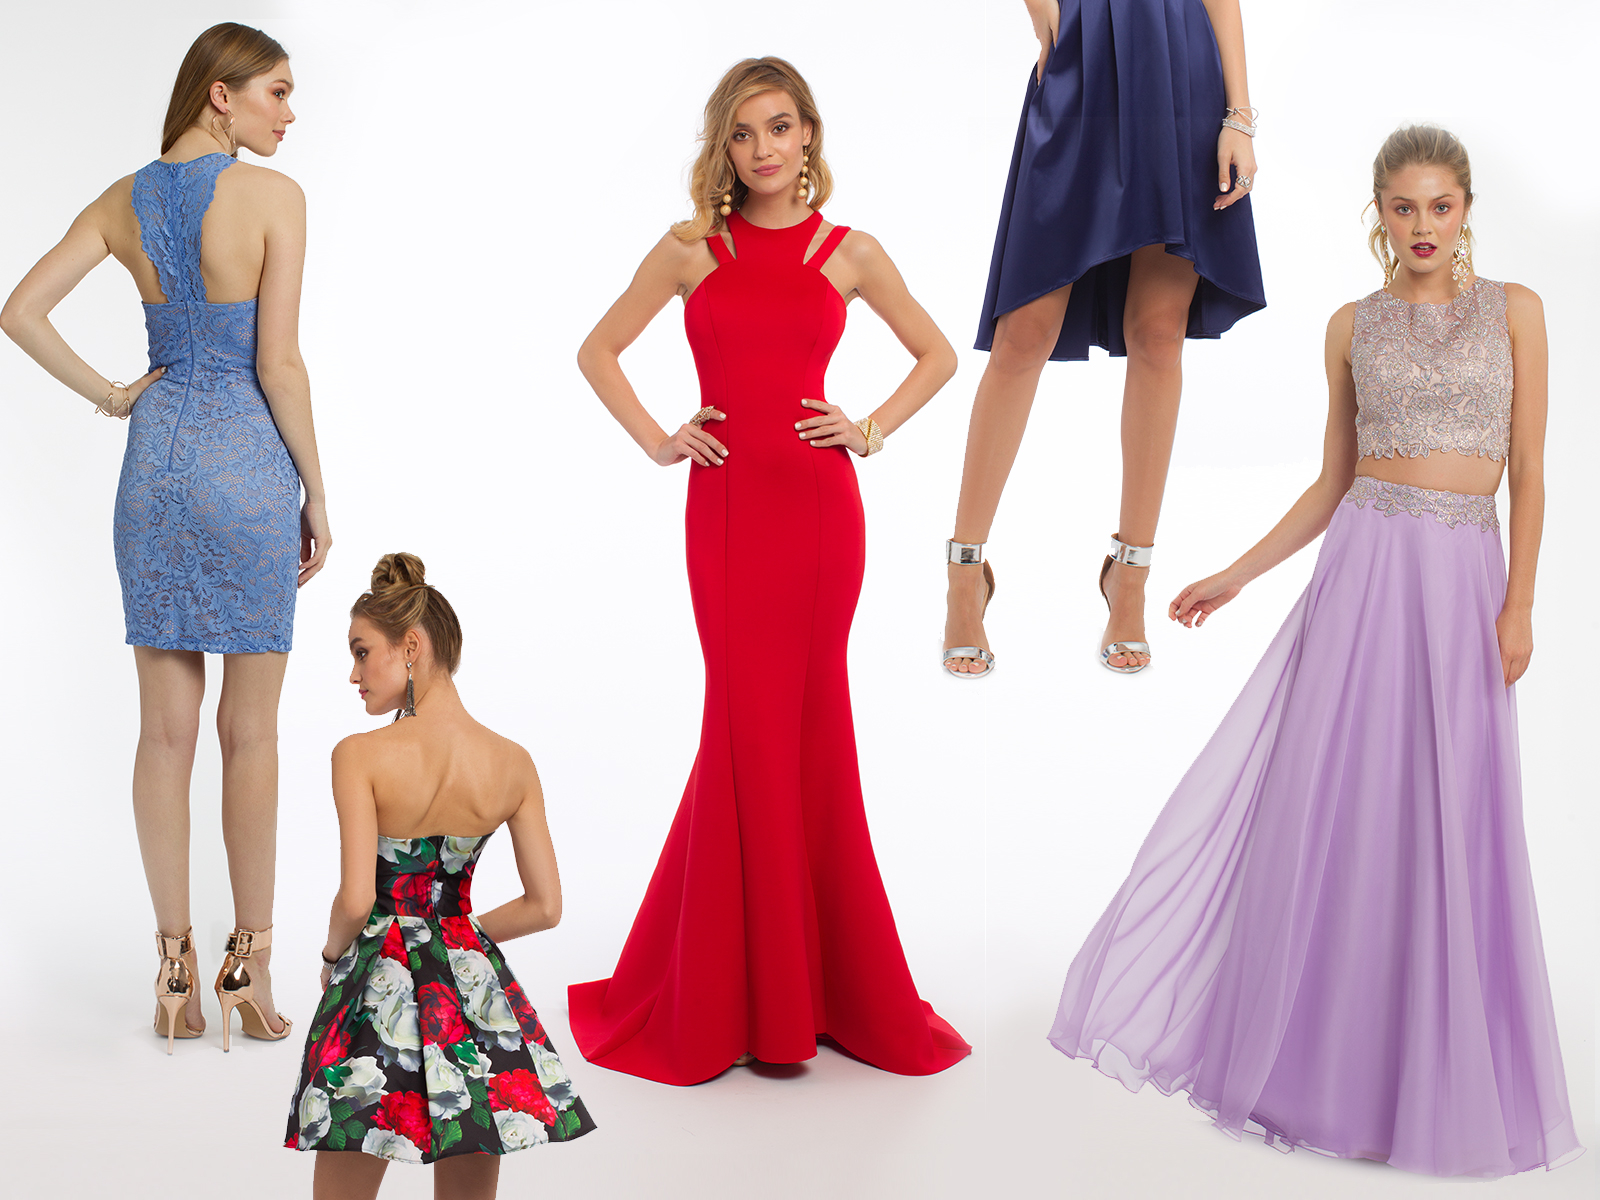 Evening Dresses for Your Favorite Features